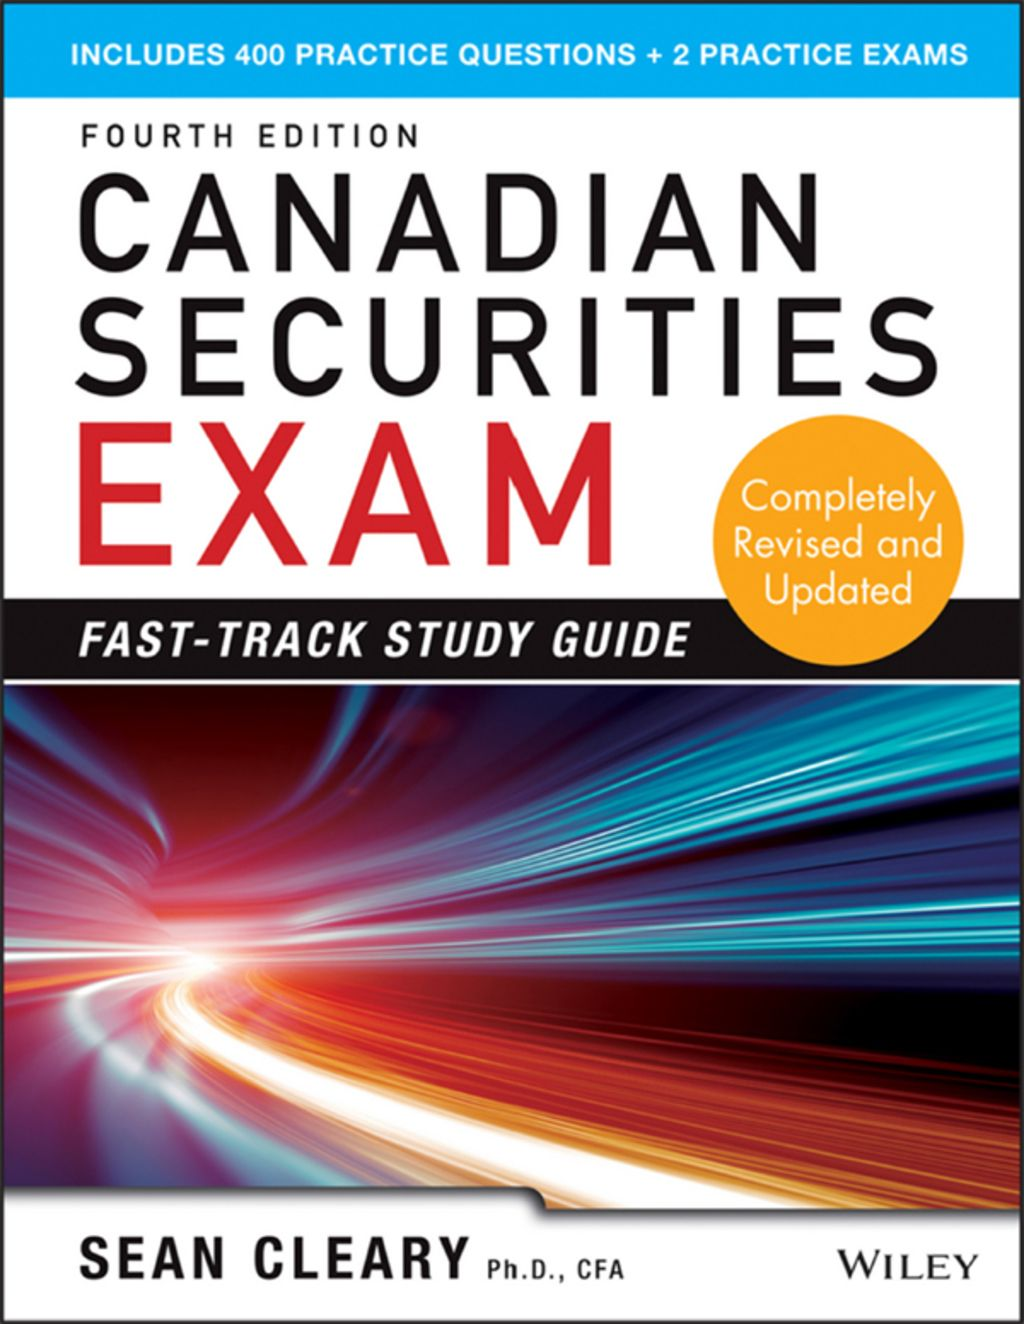 Canadian securities exam fasttrack study guide ebook